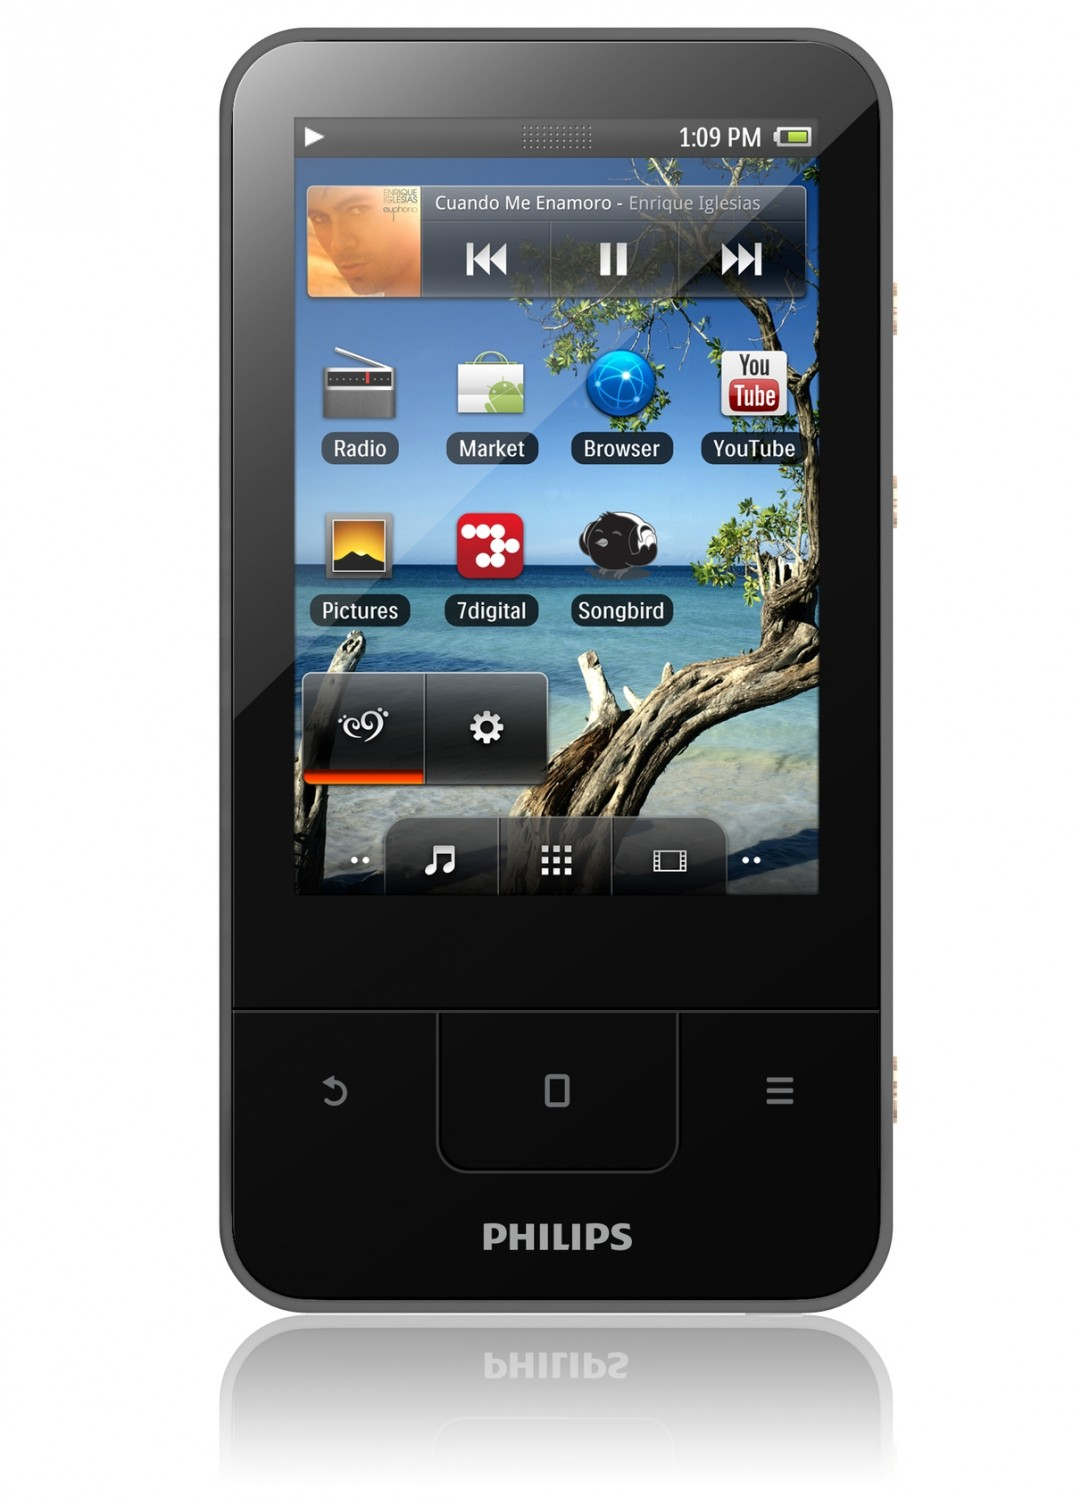 mobile Devices Philips stellt GoGear Connect 3 MP4 Player mit WiFi und Android 2.3 vor - News, Bild 1